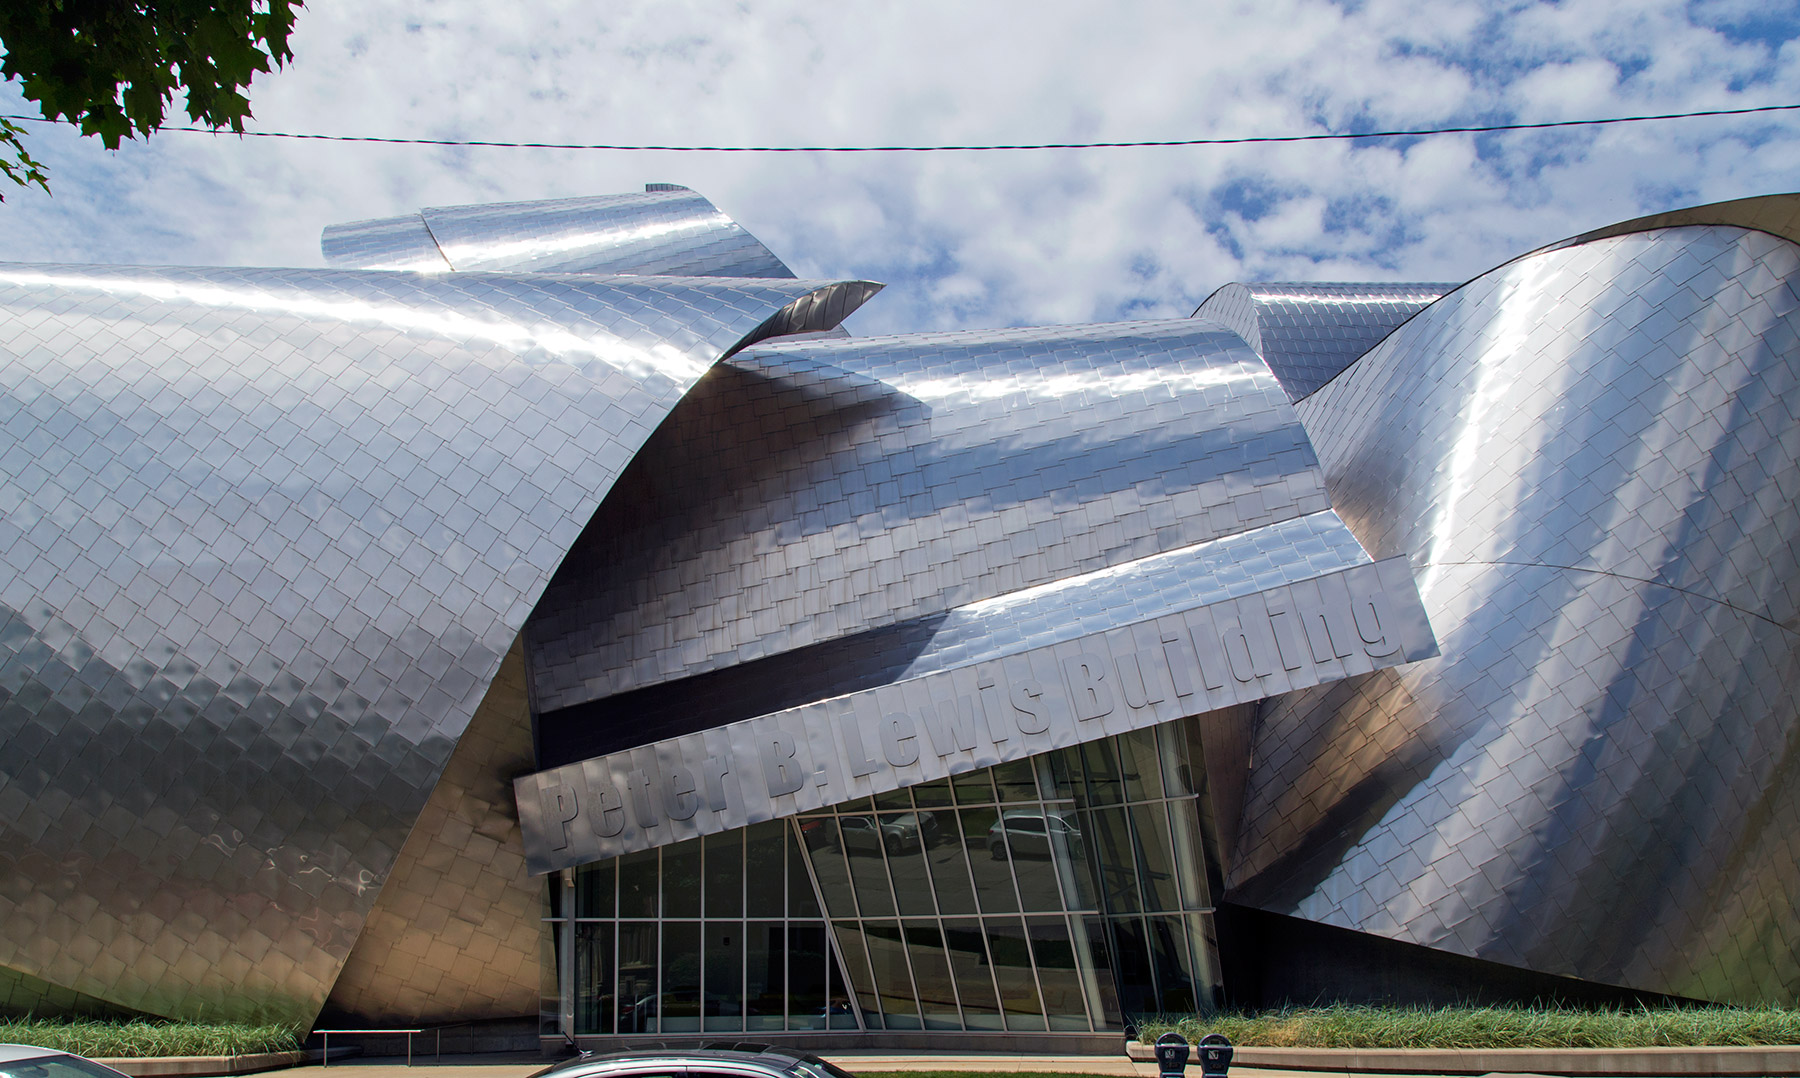 The weird and wonderful Frank Gehry-designed Peter B. Lewis Buil